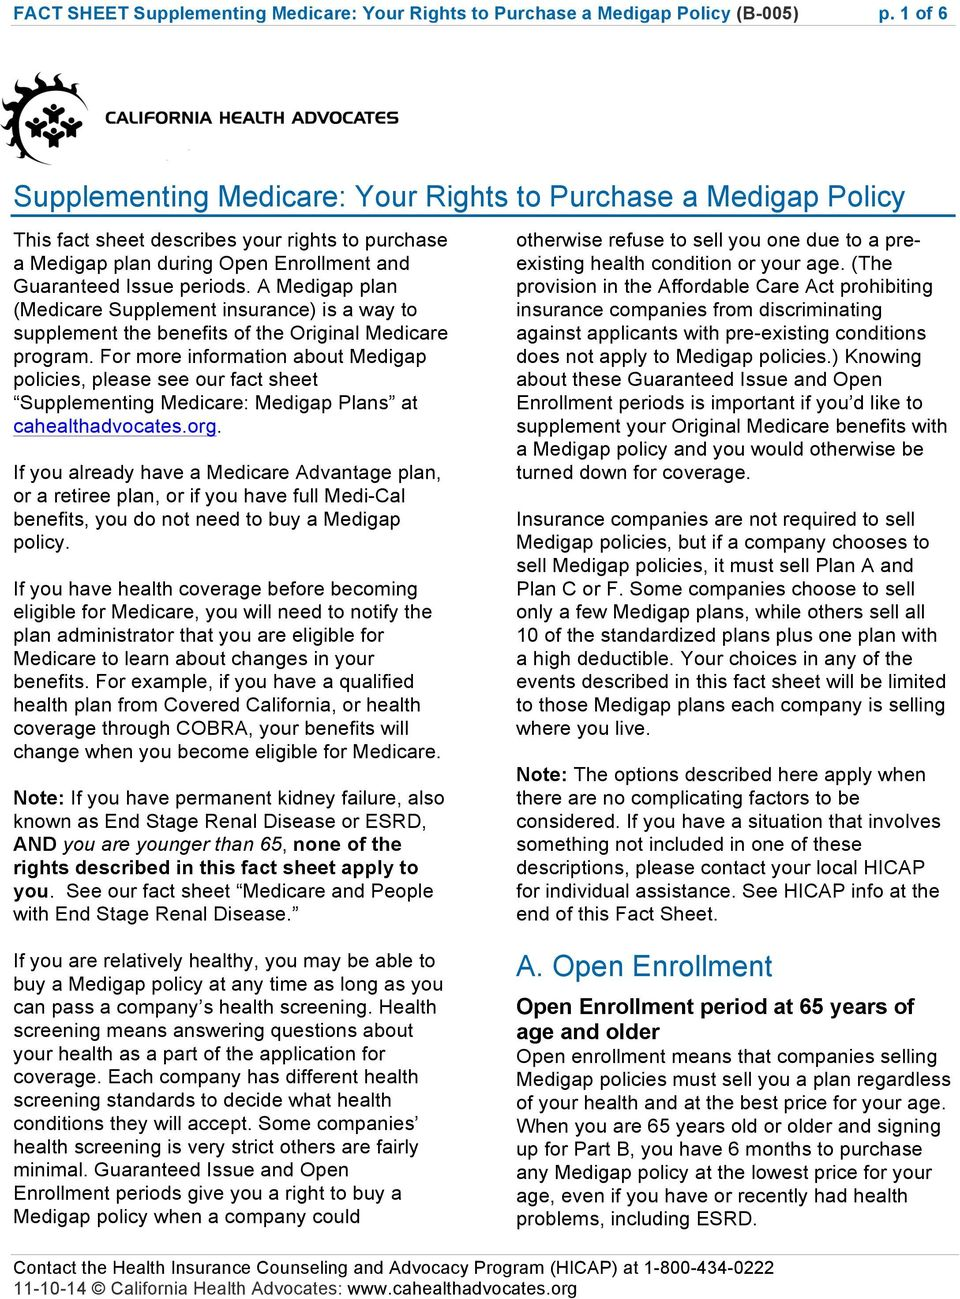 A Medigap plan (Medicare Supplement insurance) is a way to supplement the benefits of the Original Medicare program.